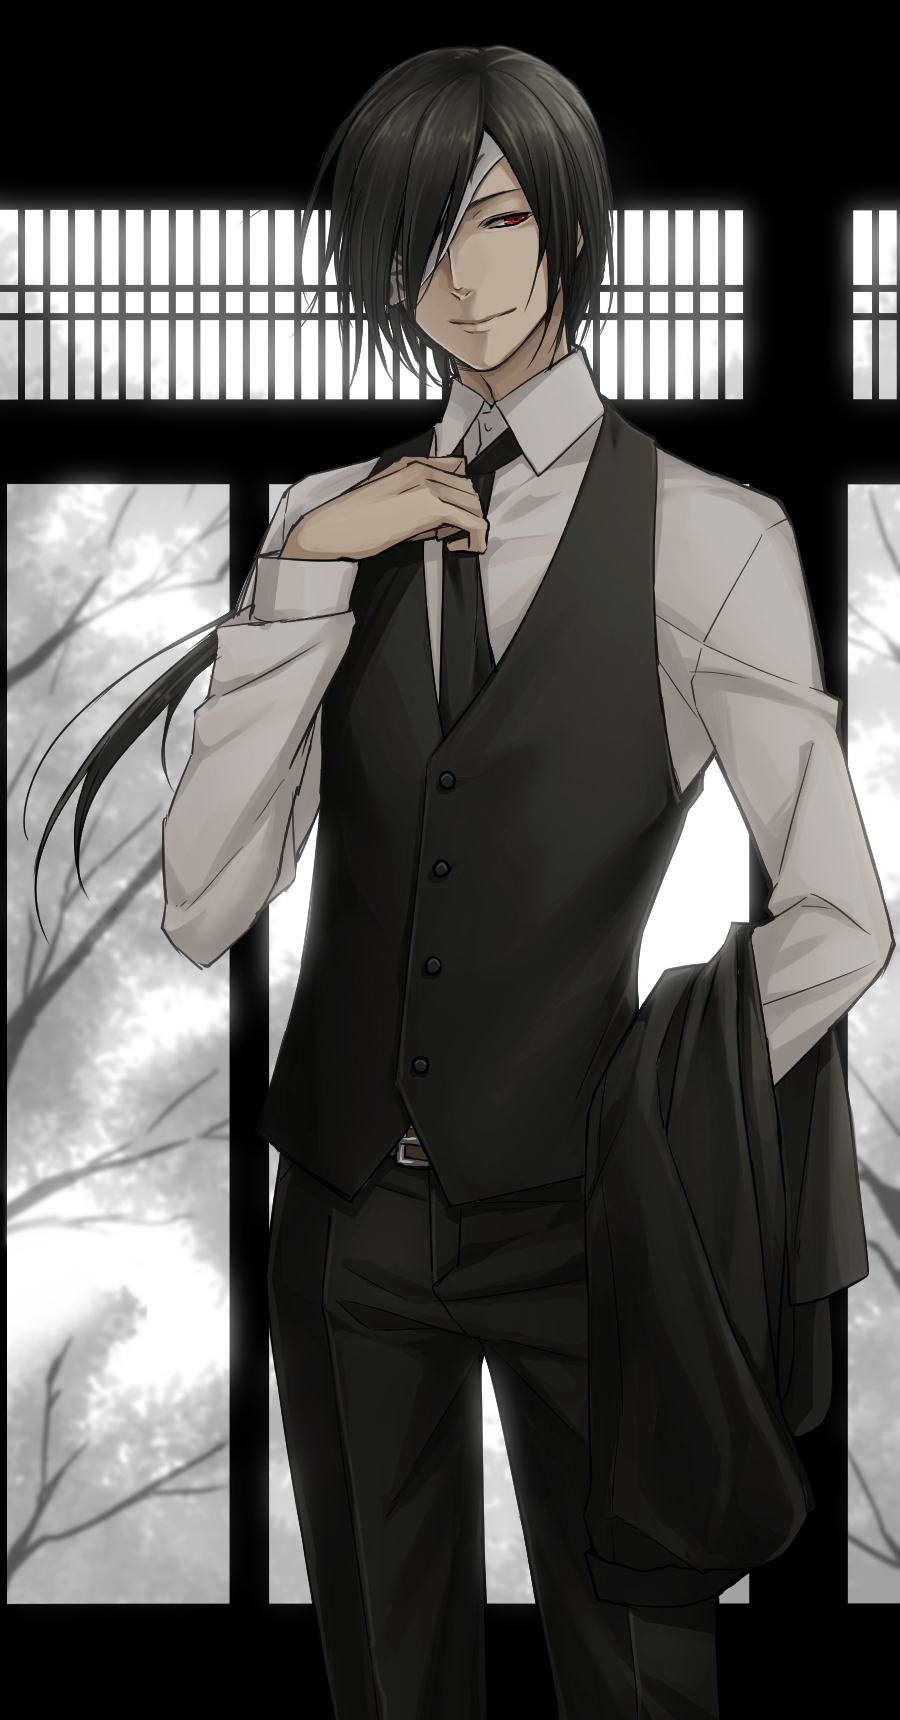 Matoba Seiji from Natsume Yuujinchou wearing a black and white suit white shirt vest and a tie black haired bishounen with red eyes looking like a demon mafia or a butler anime suit man handsome seme - Sinister and charming natsume-yuujinchou-natsumes-book-of-friends-yaoi Seme Matoba Seiji Long-haired Formal wear Demon Bishōnen - fanarts on yaoi-online.com